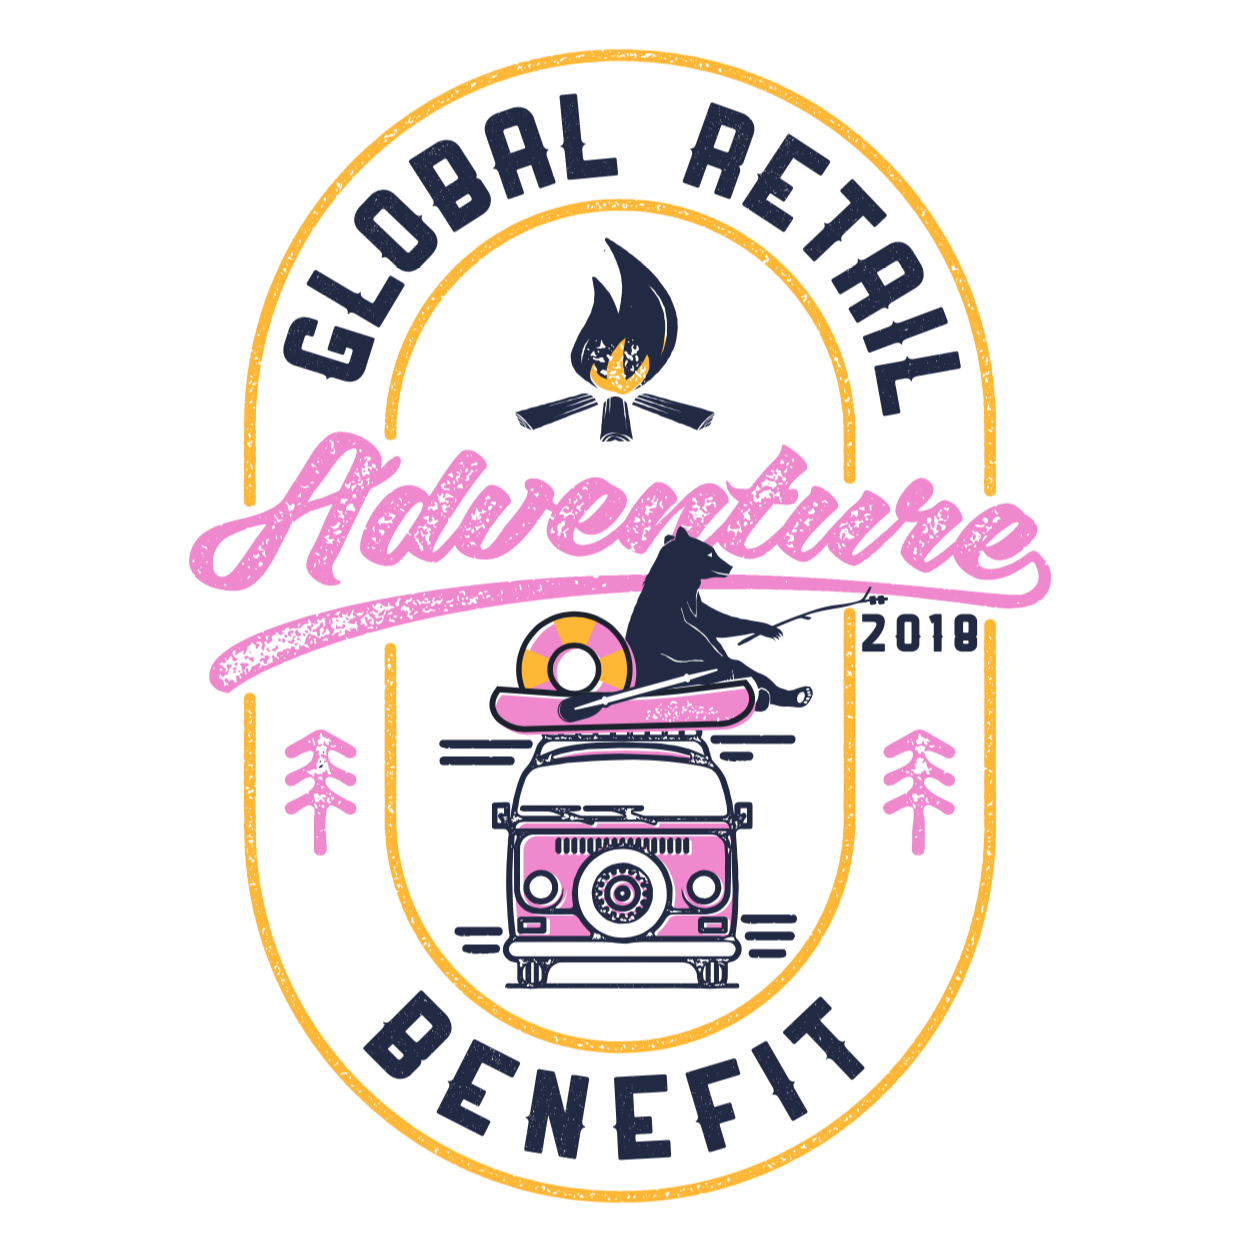 *Global Retail offsite logo.png